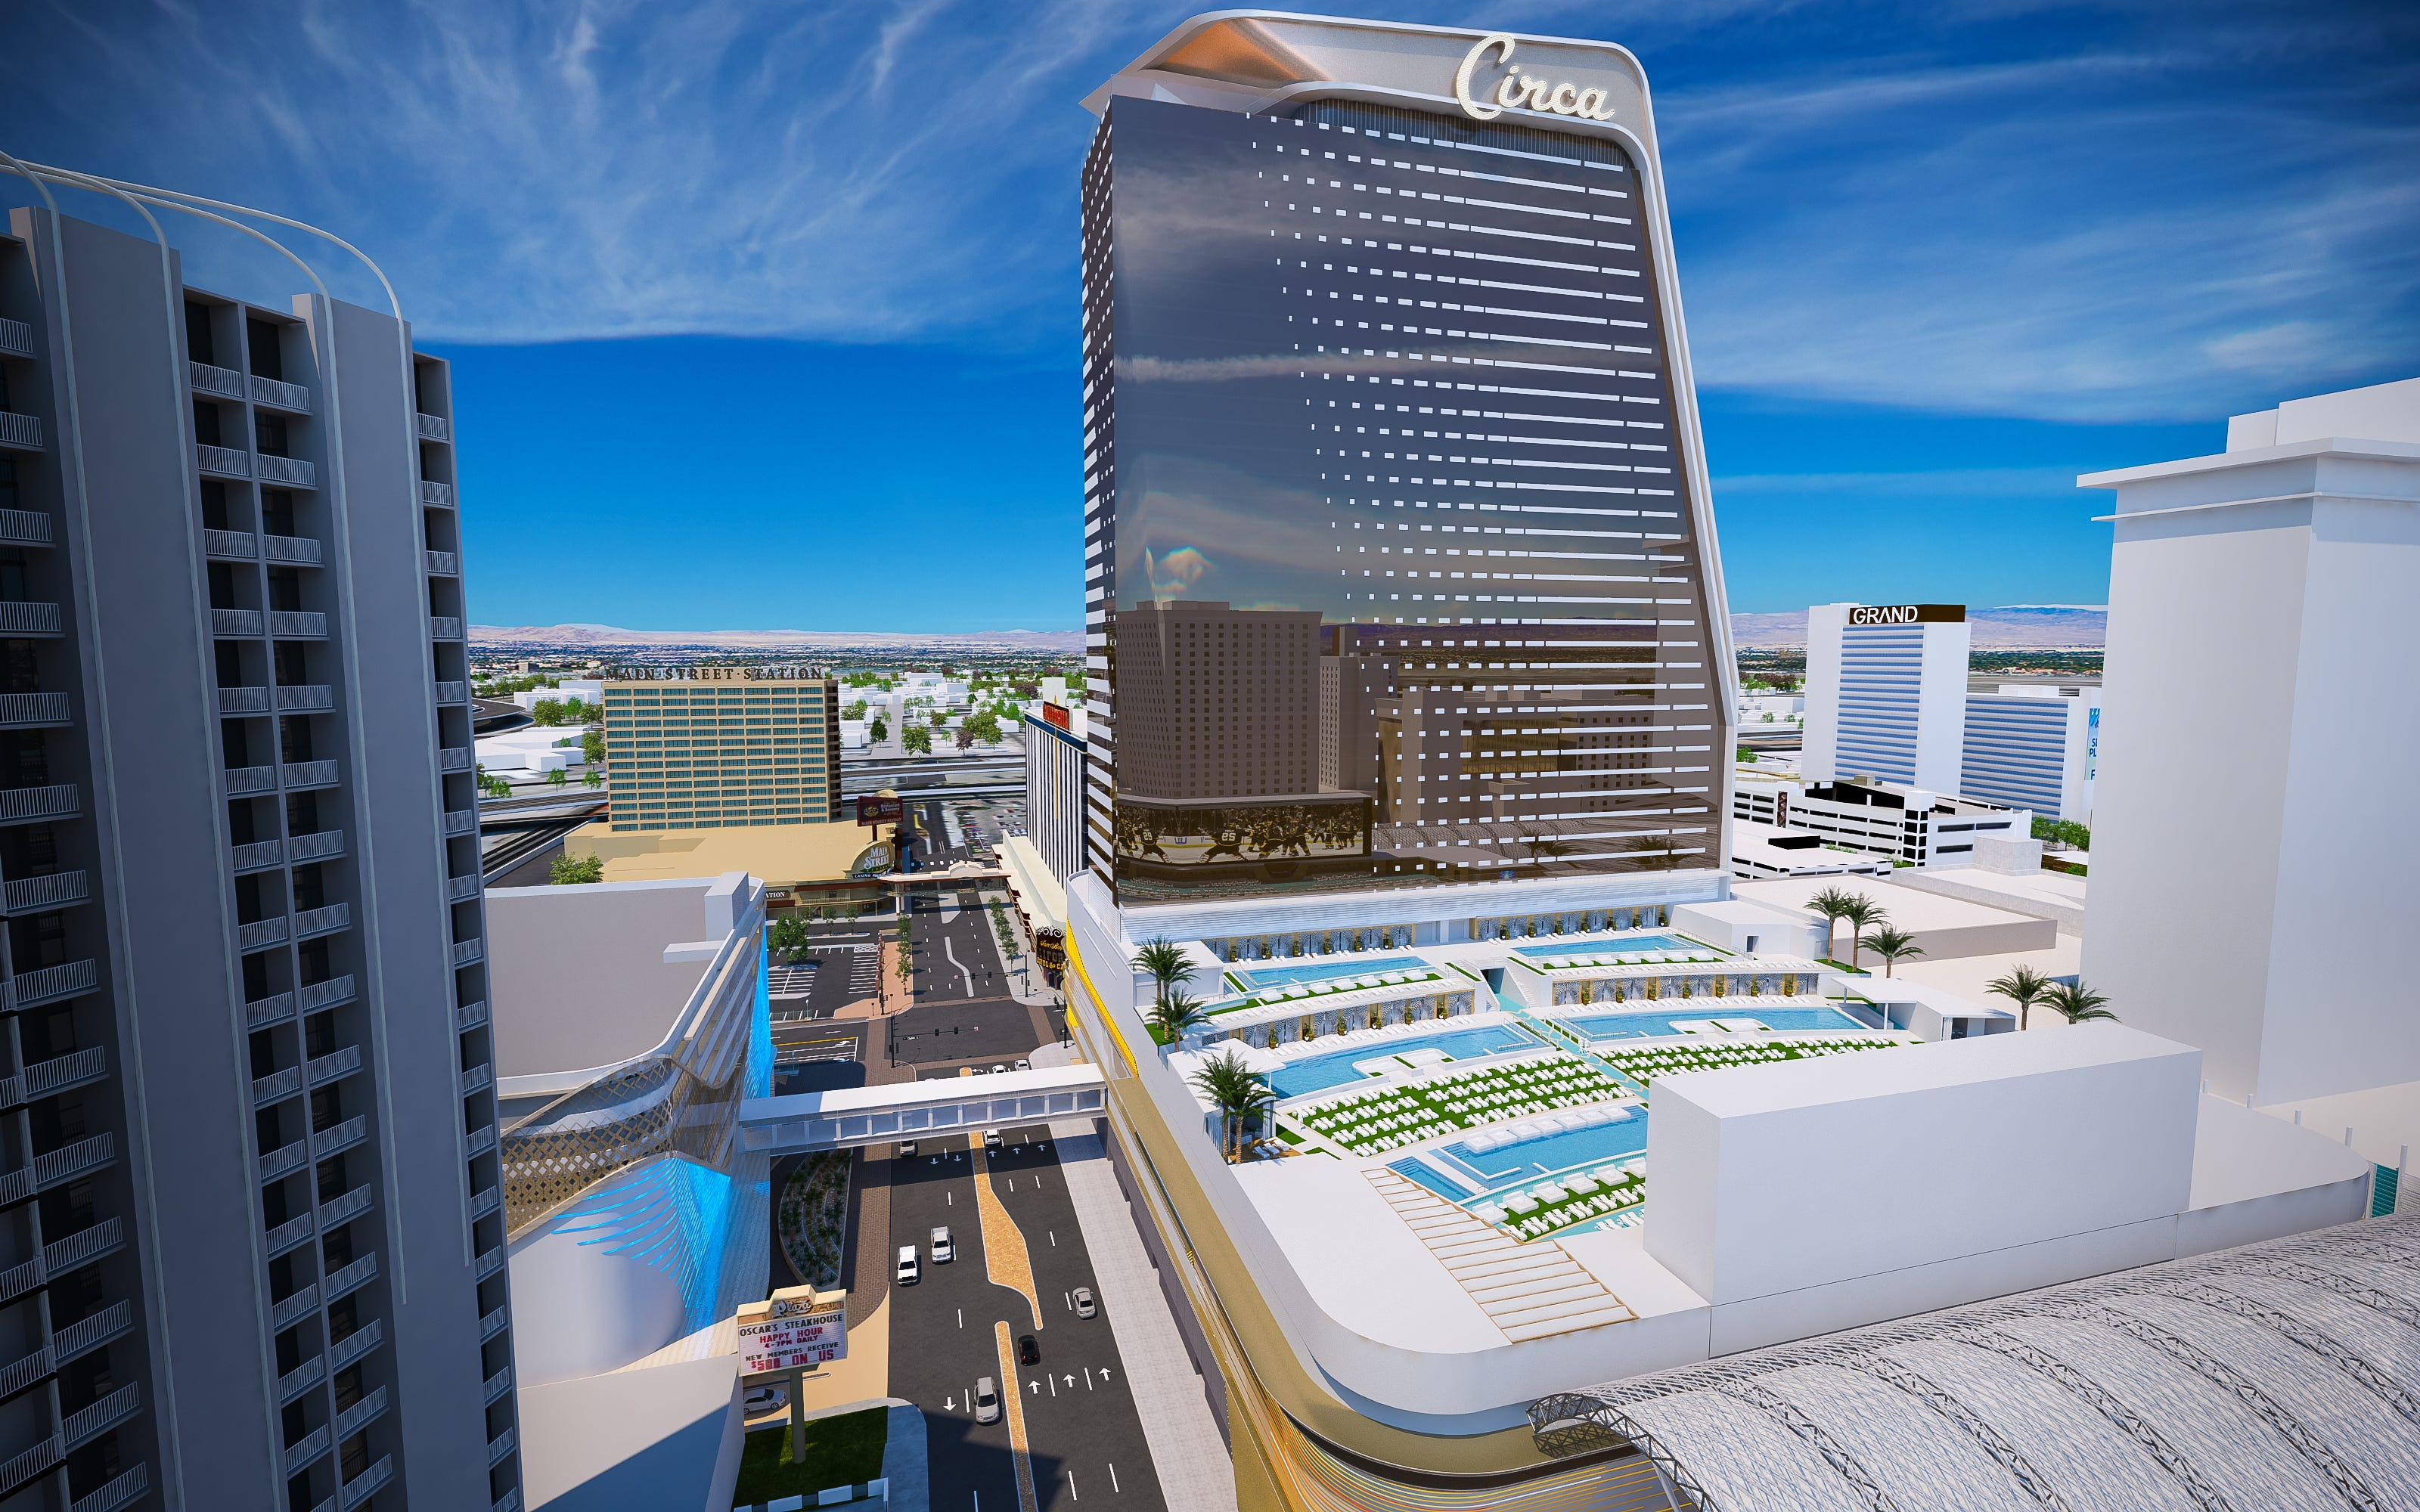 Year-round Las Vegas resort pool aims to be 'the greatest pool in the history of the world'